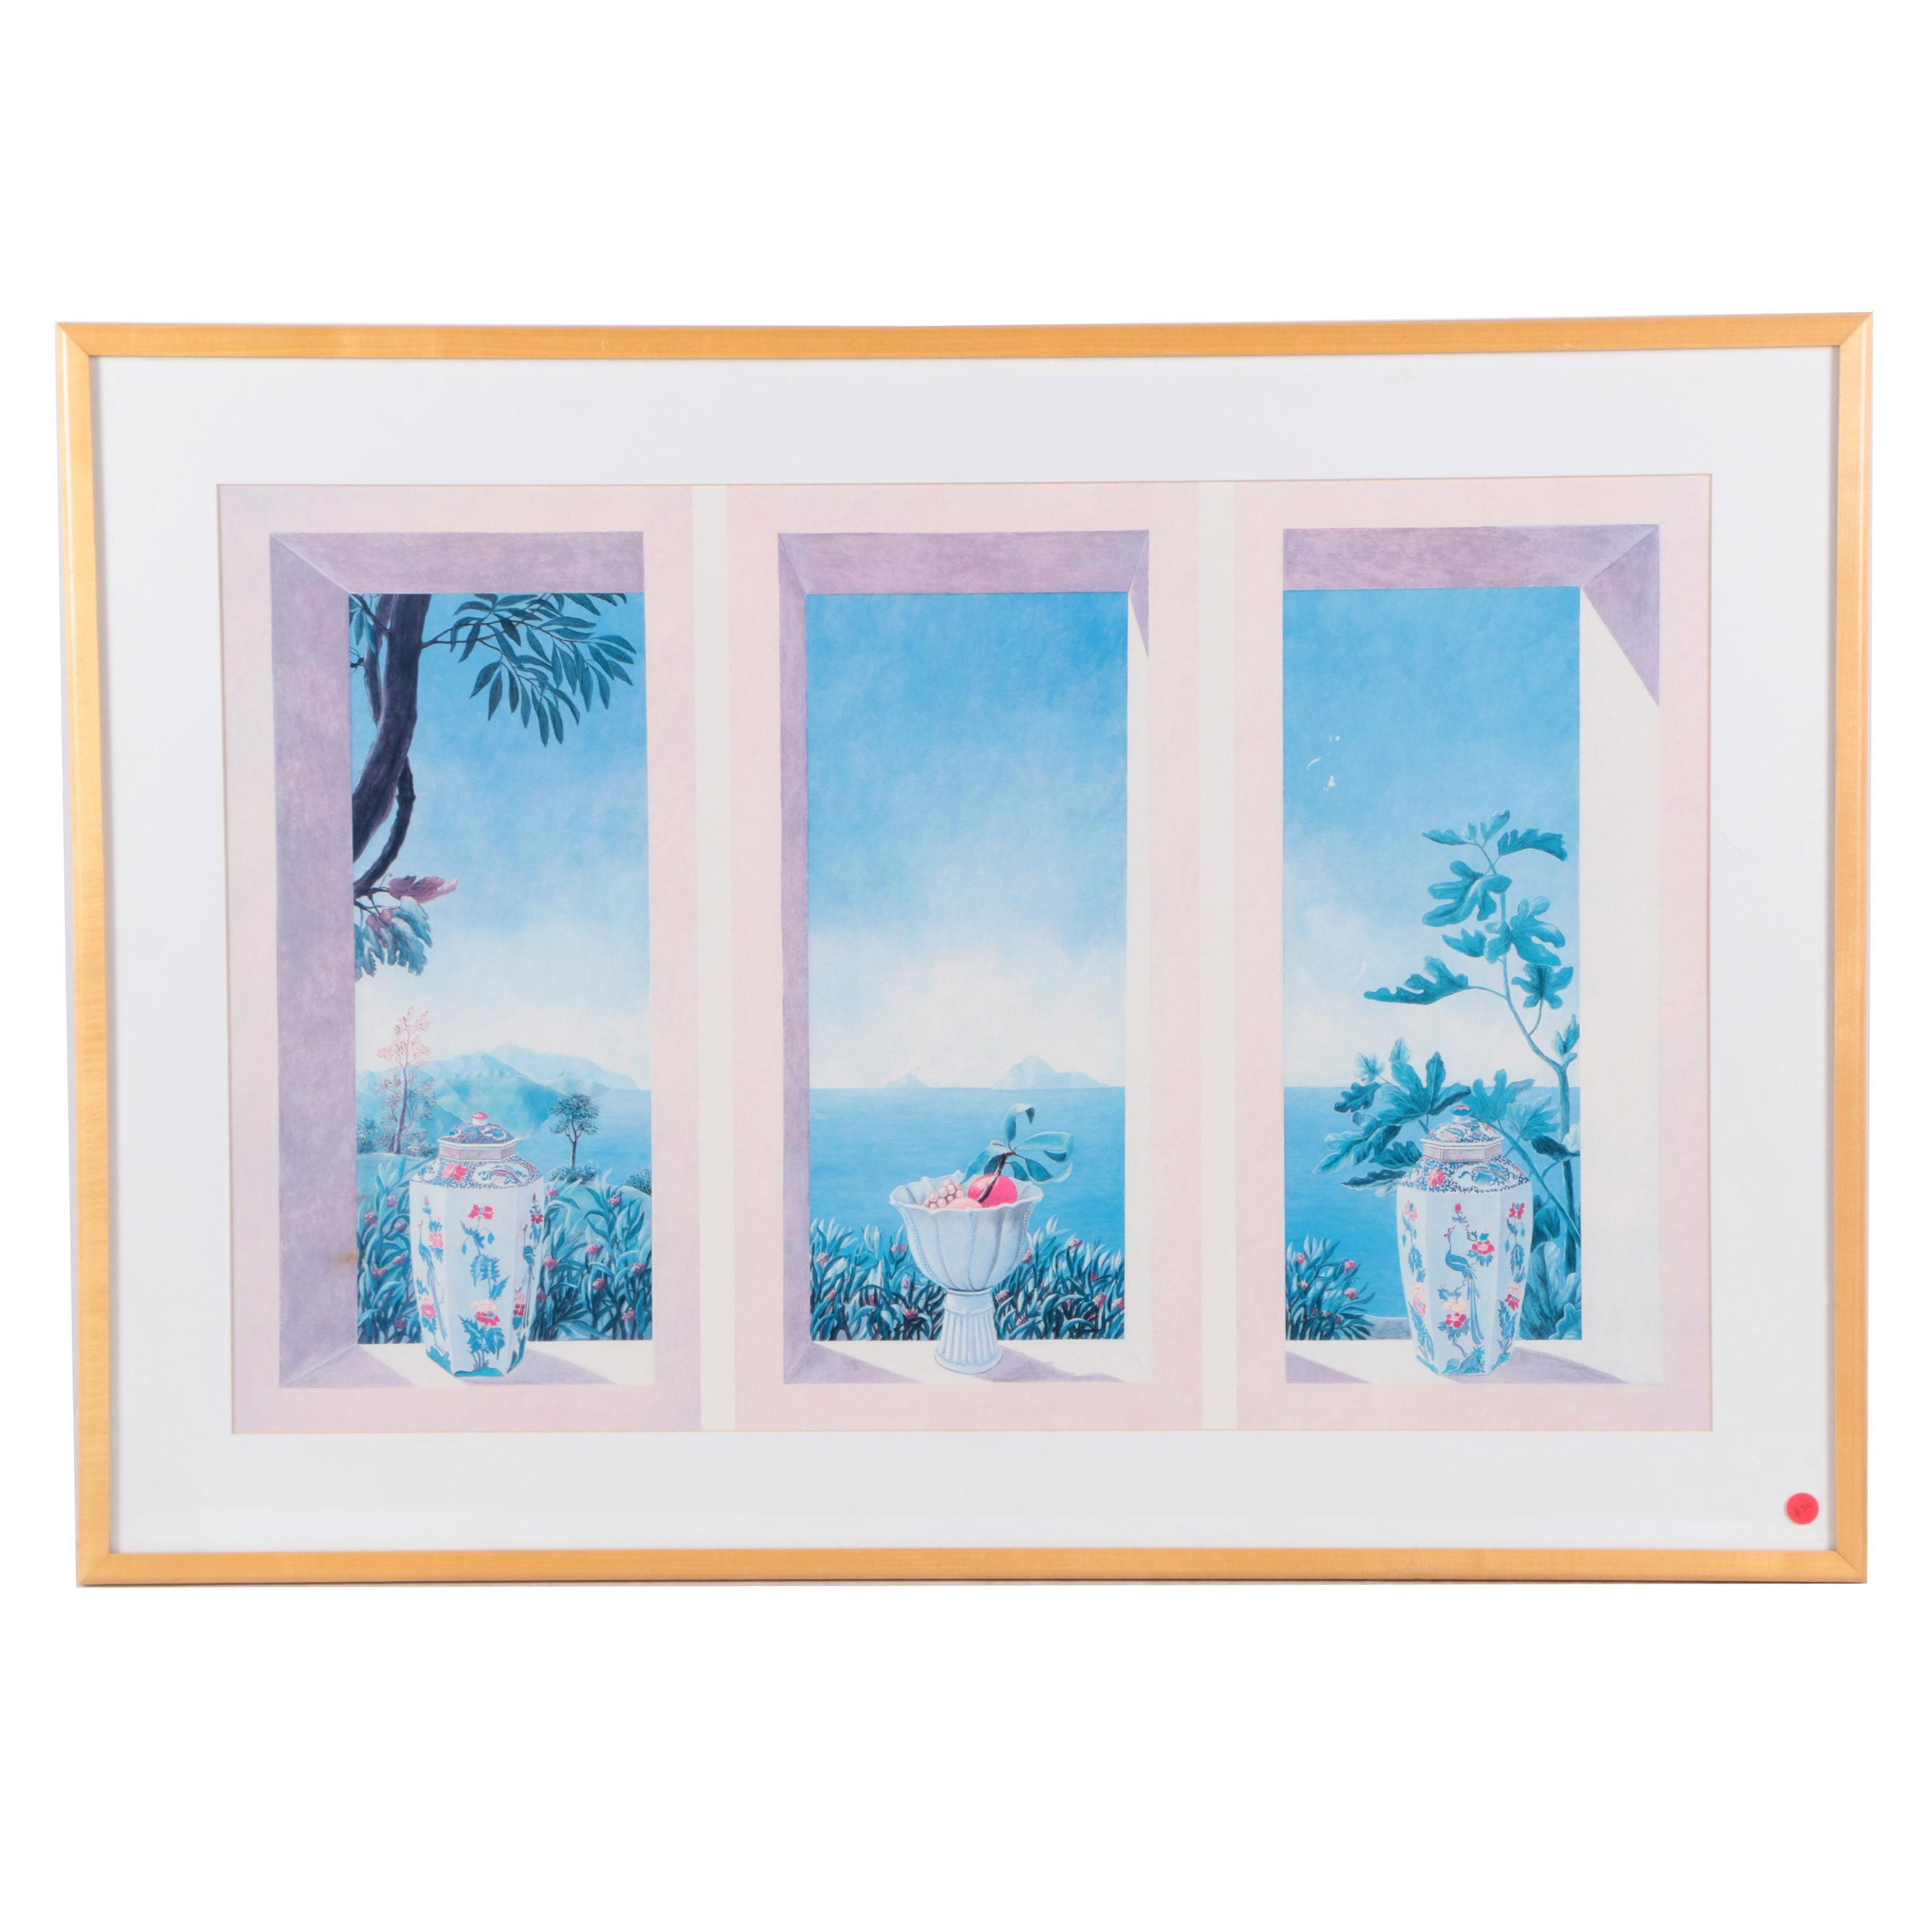 Offset Lithograph on Paper of Scenic View